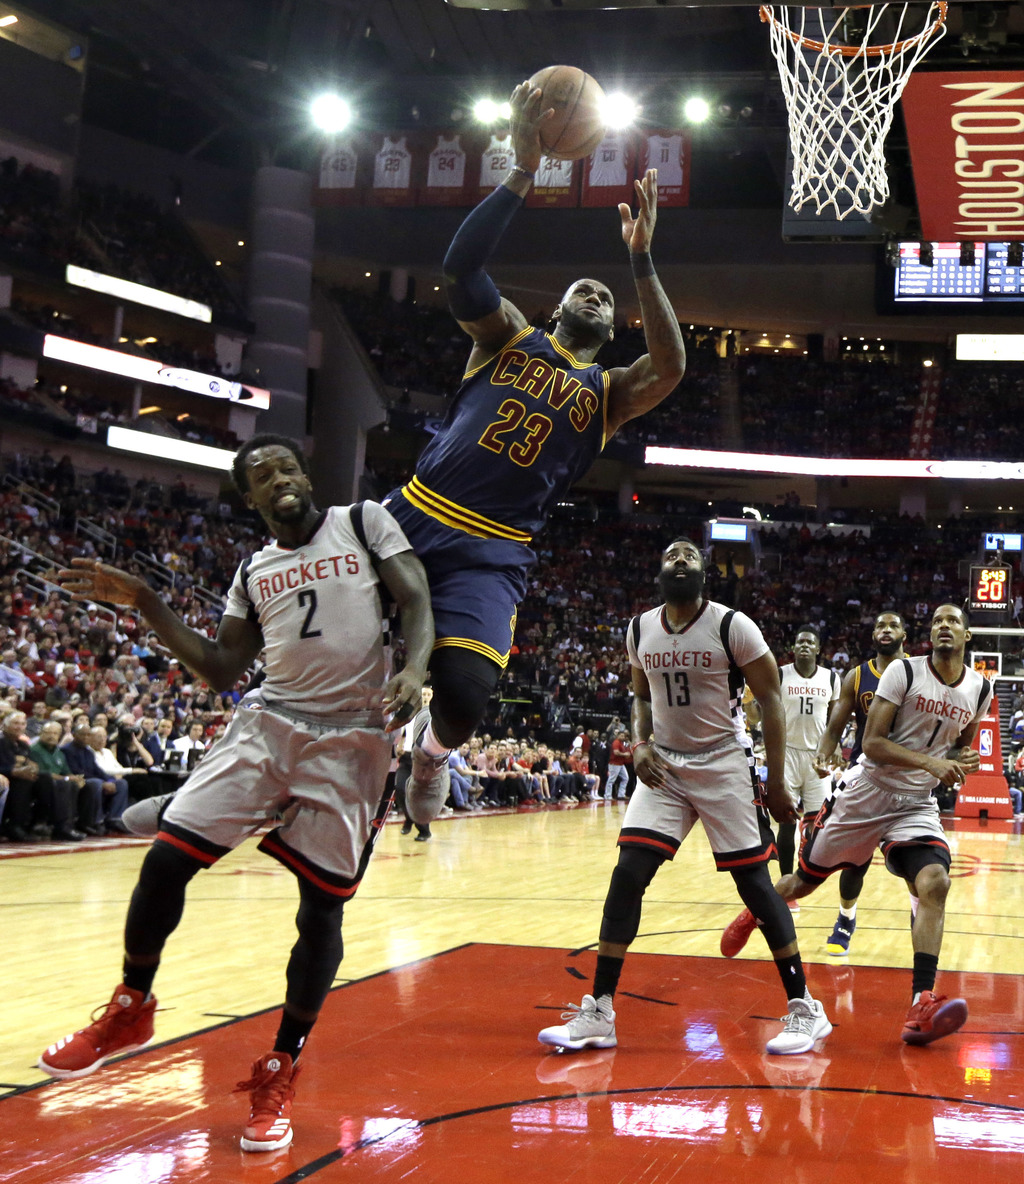 Cleveland Cavaliers' LeBron James (23) is fouled by Houston Rockets' Patrick Beverley (2) during the first quarter of an NBA basketball...